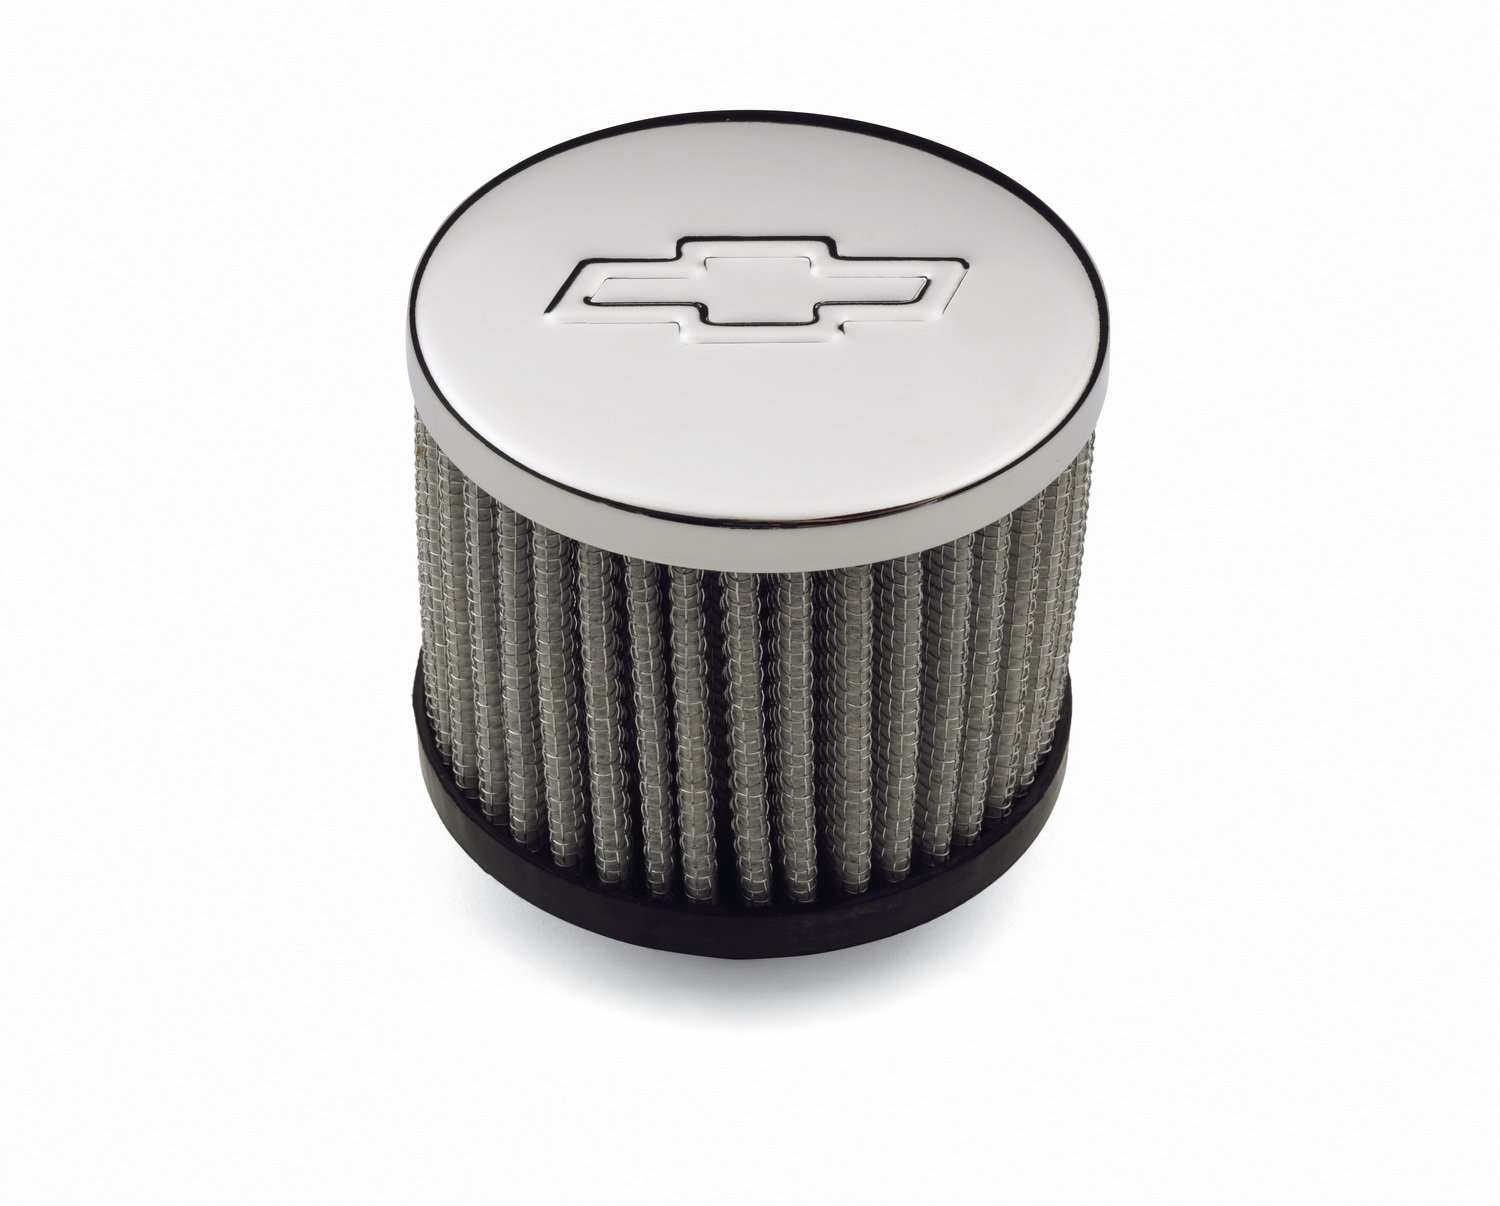 Proform 141-622 Push-In Filter Air Breather Cap